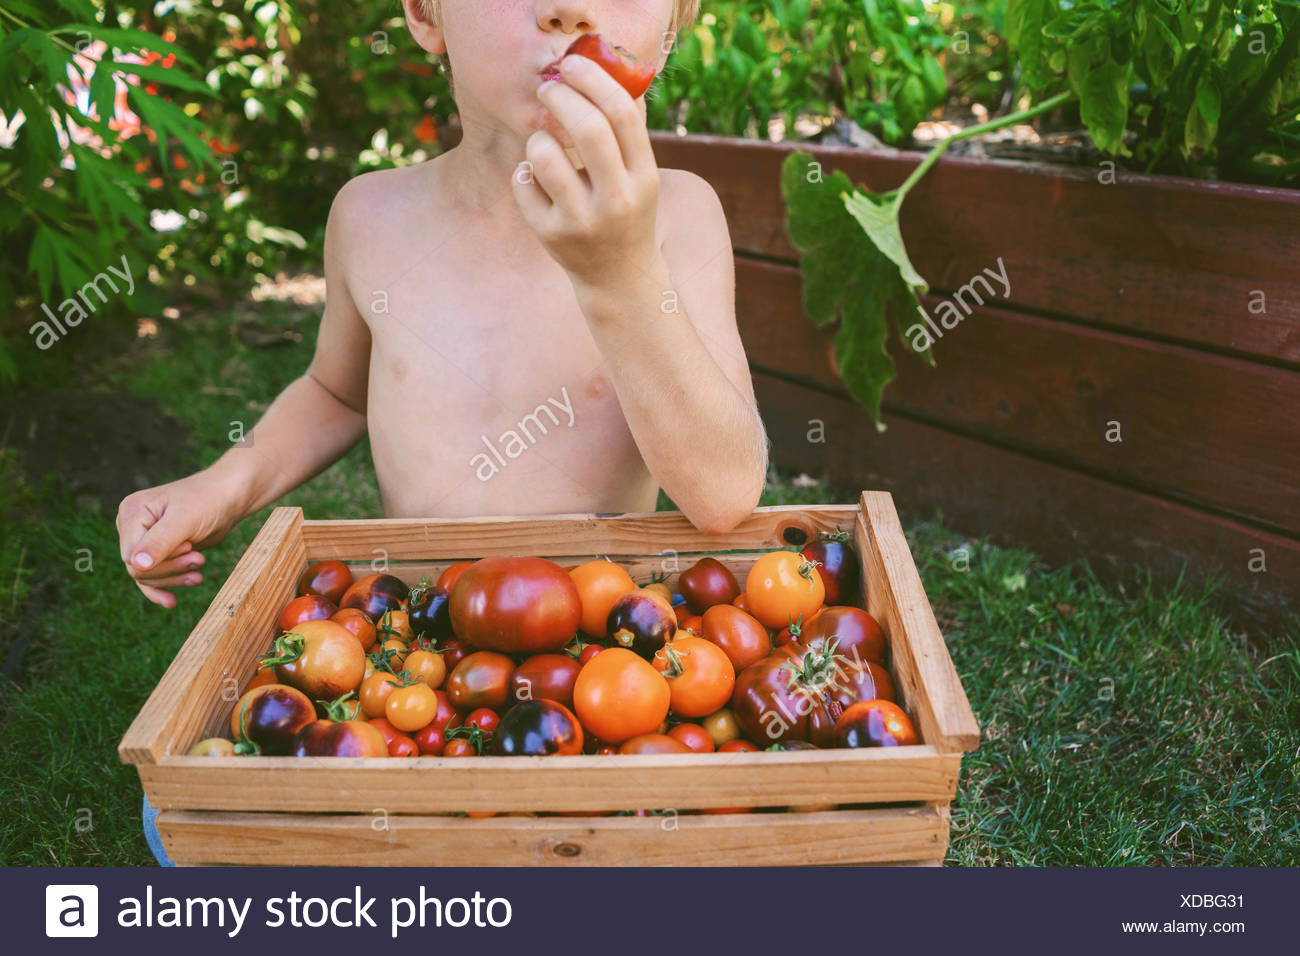 Close-up of a boy eating a freshly picked tomato - Stock Image